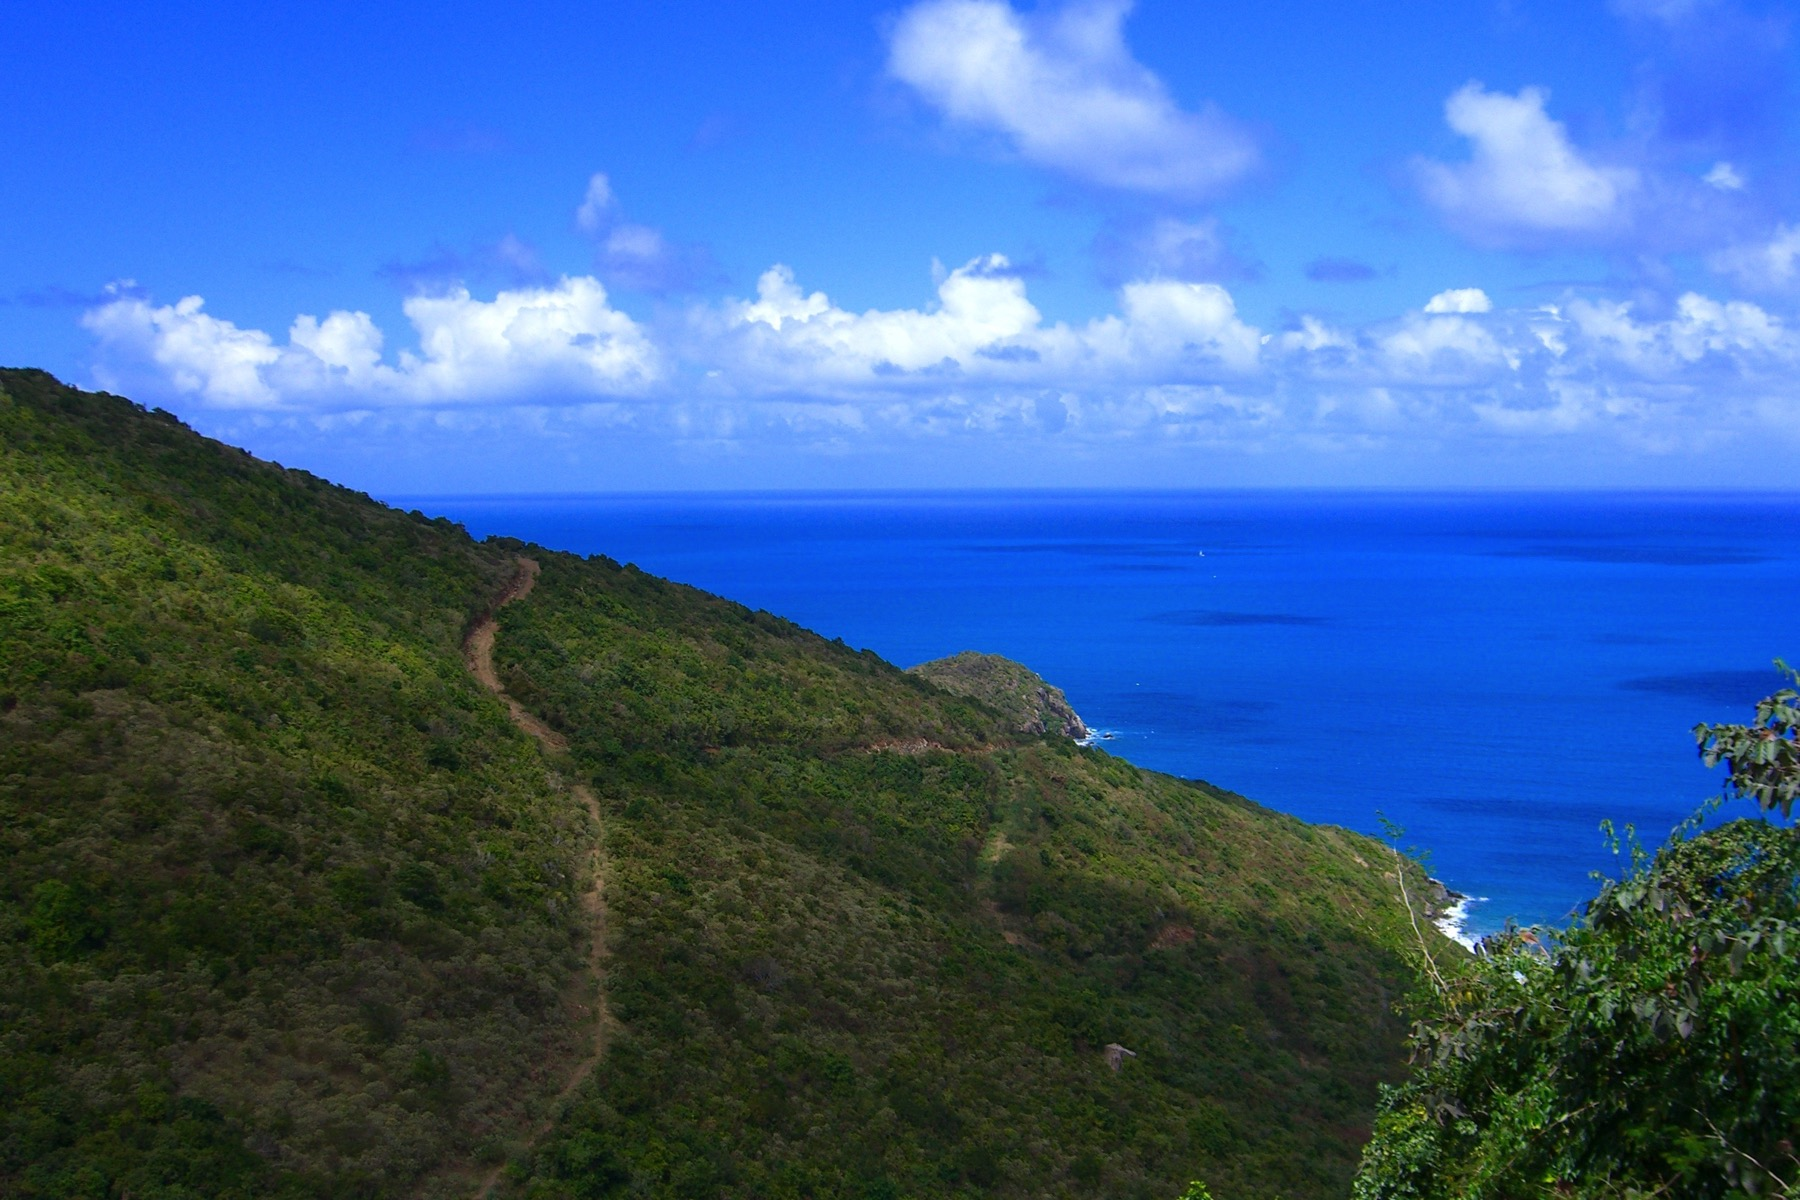 Land for Sale at Cooten Bay Land 64 Cooten Bay, Tortola British Virgin Islands